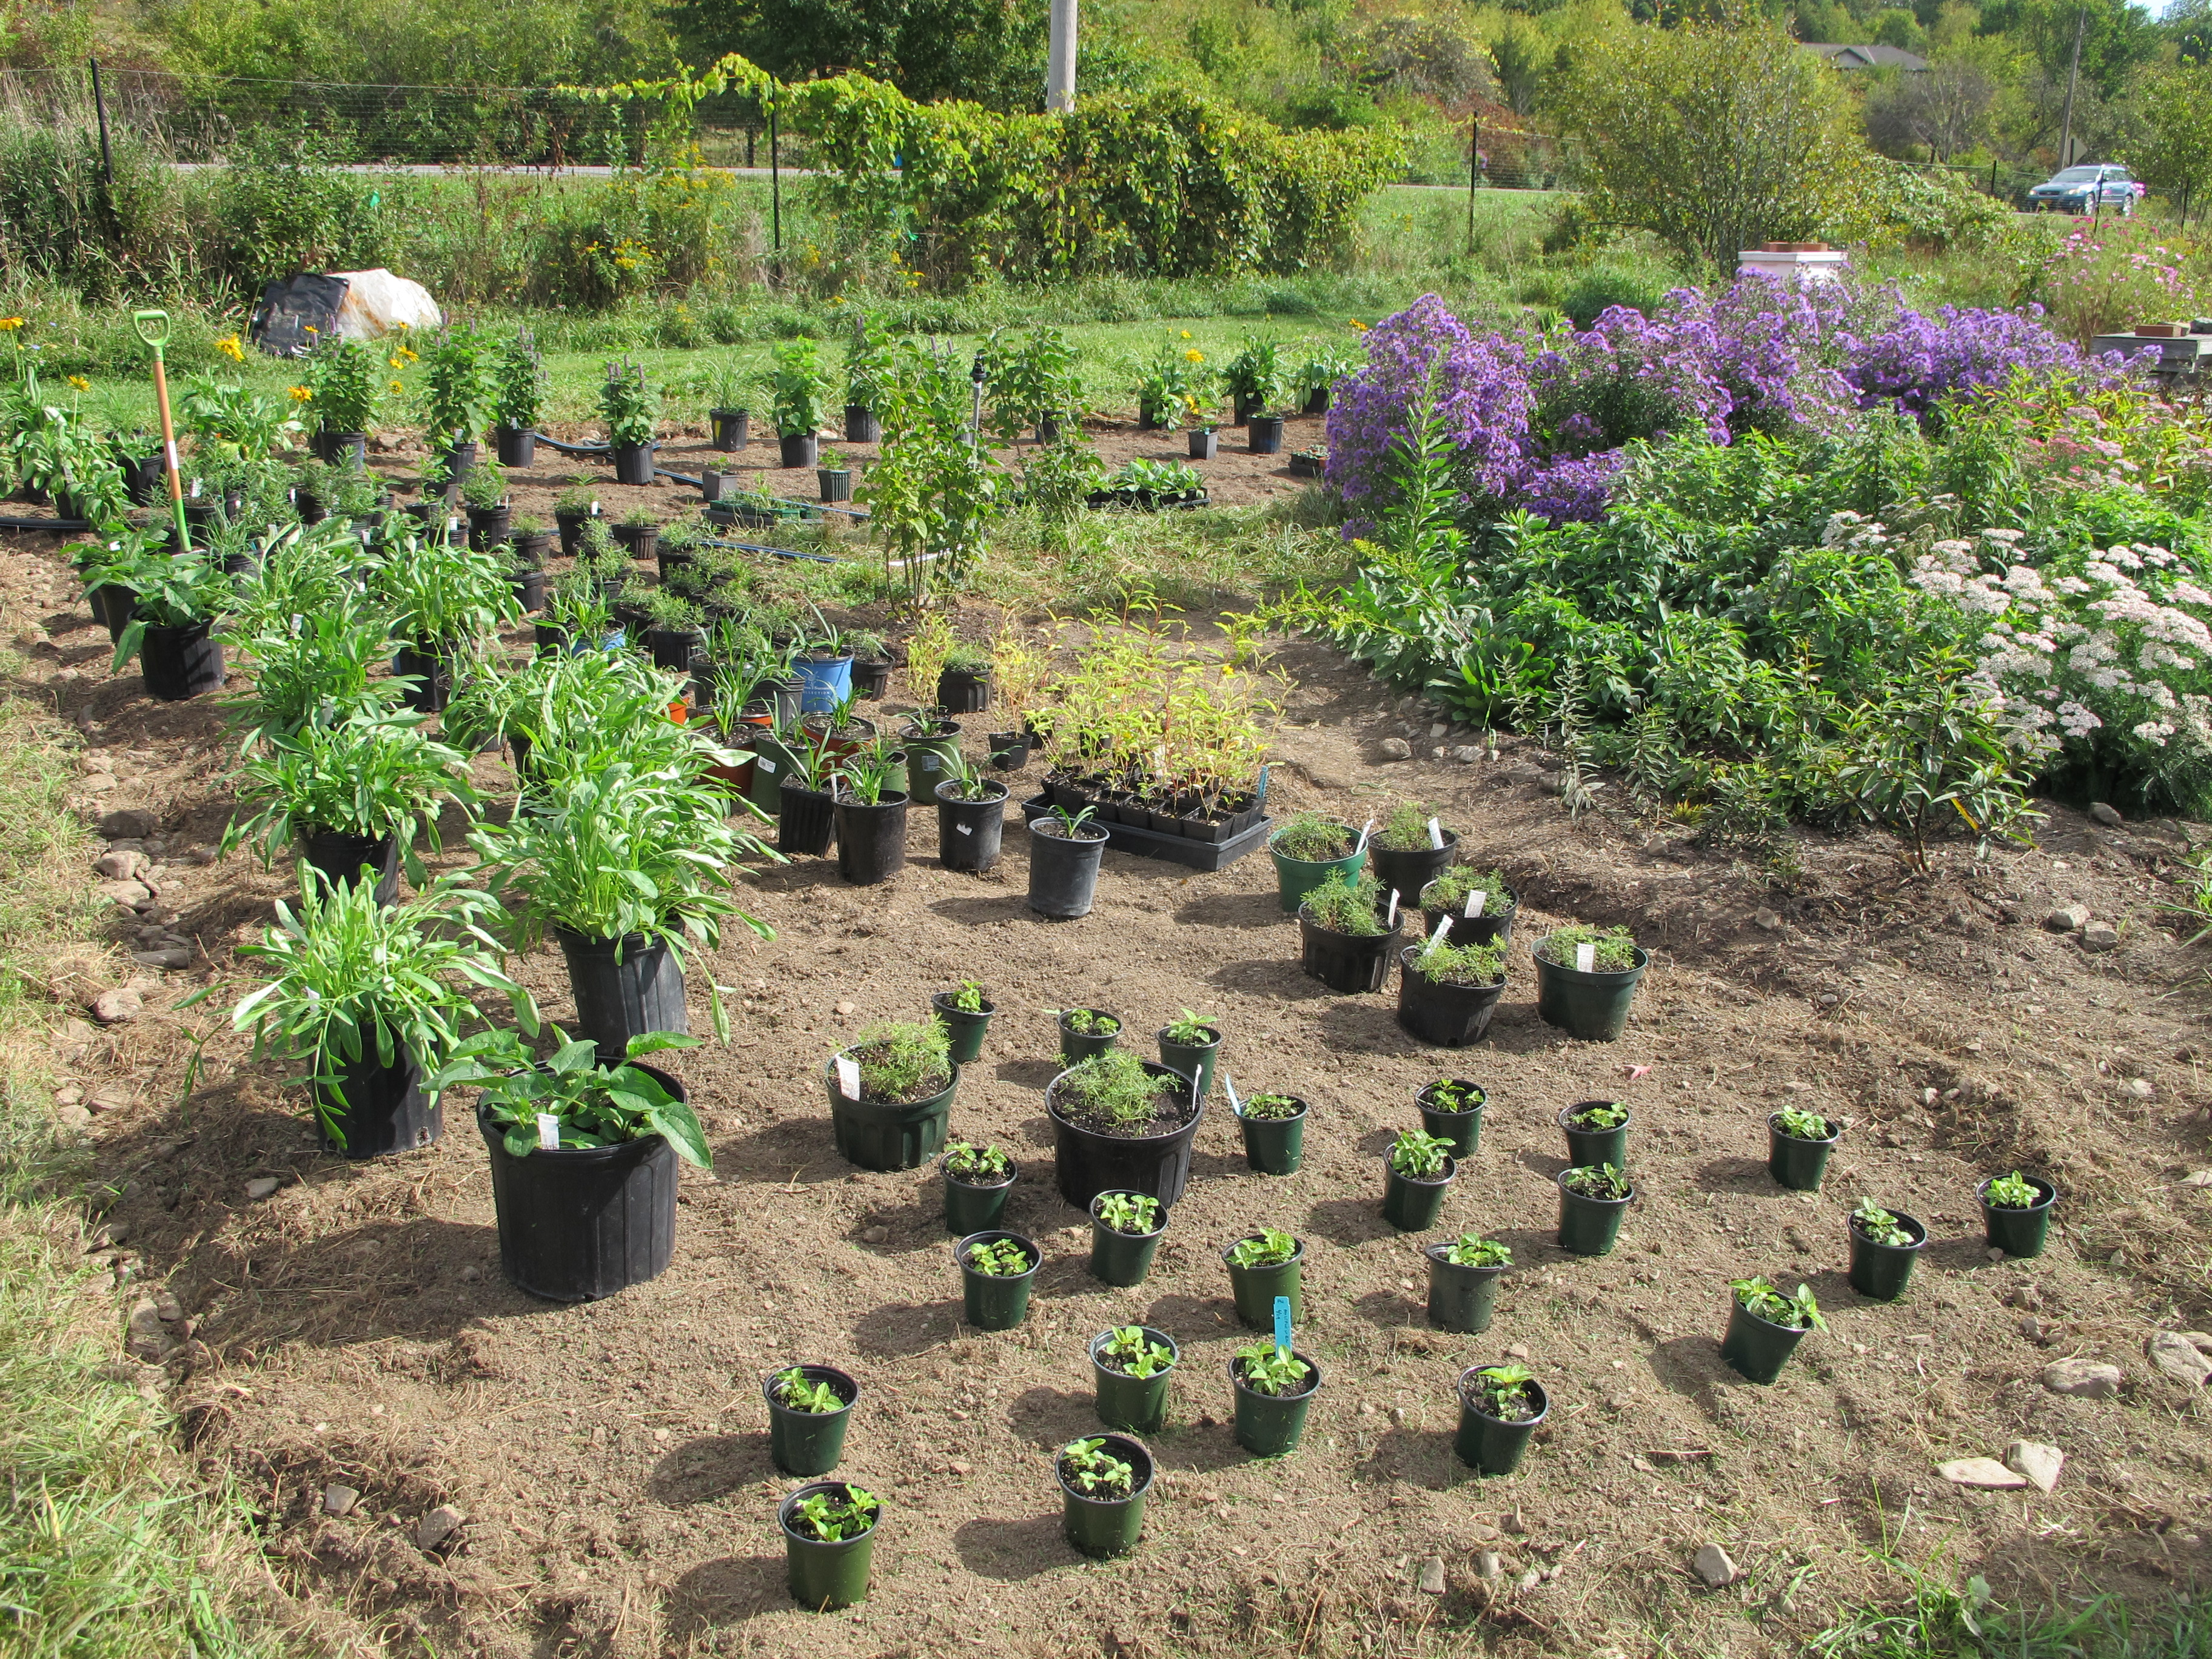 potted plants are spaced out on the bare soil and ready to be planted